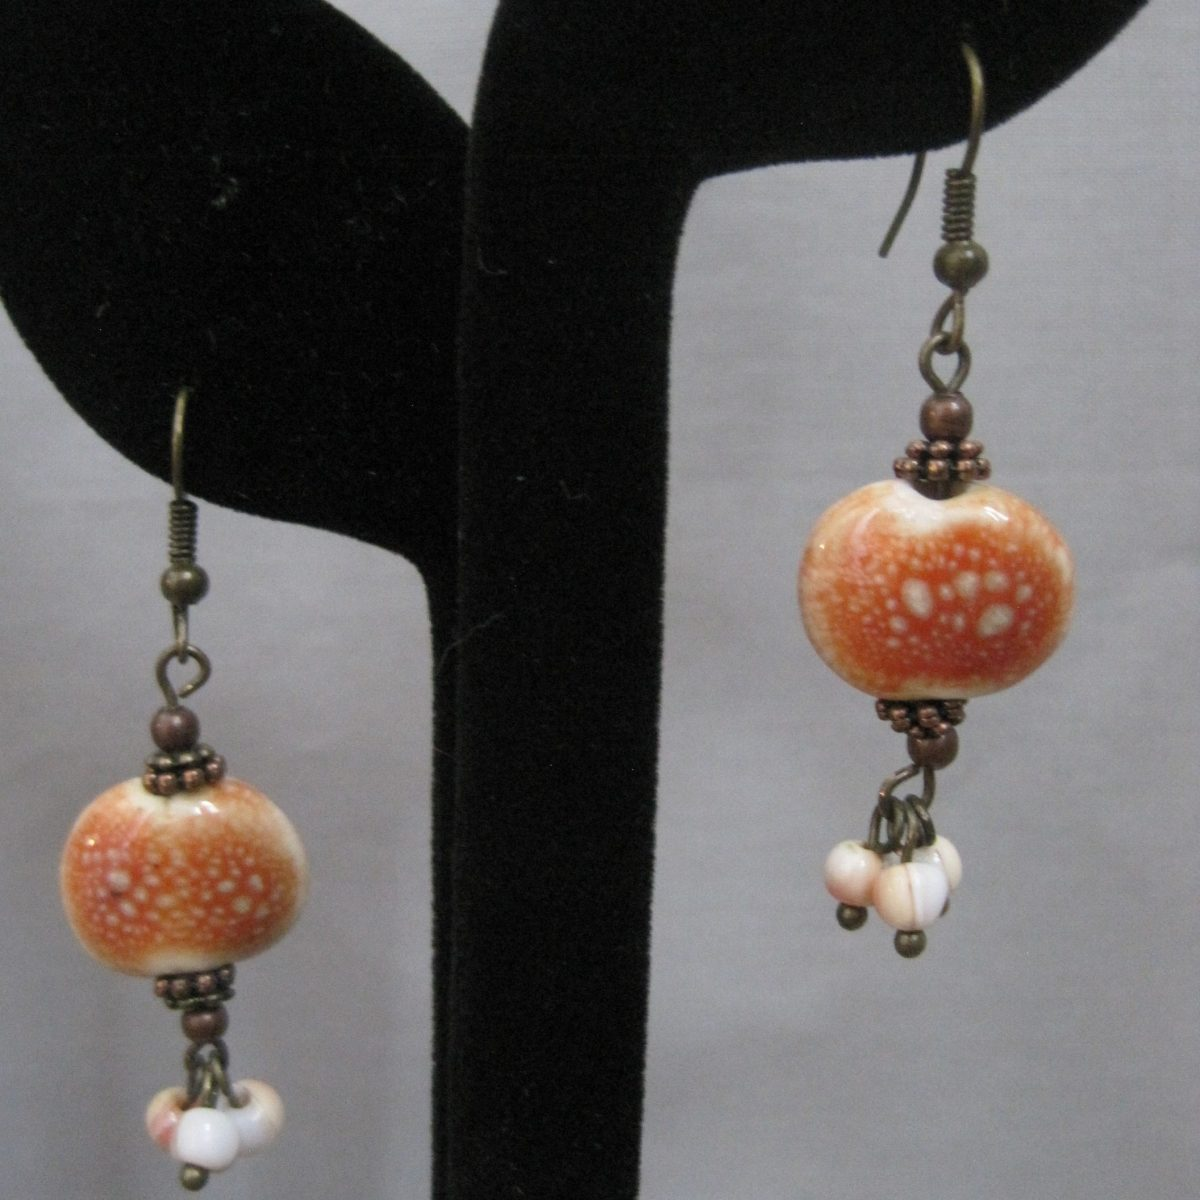 The Crabshell with Shell Dangle Earrings